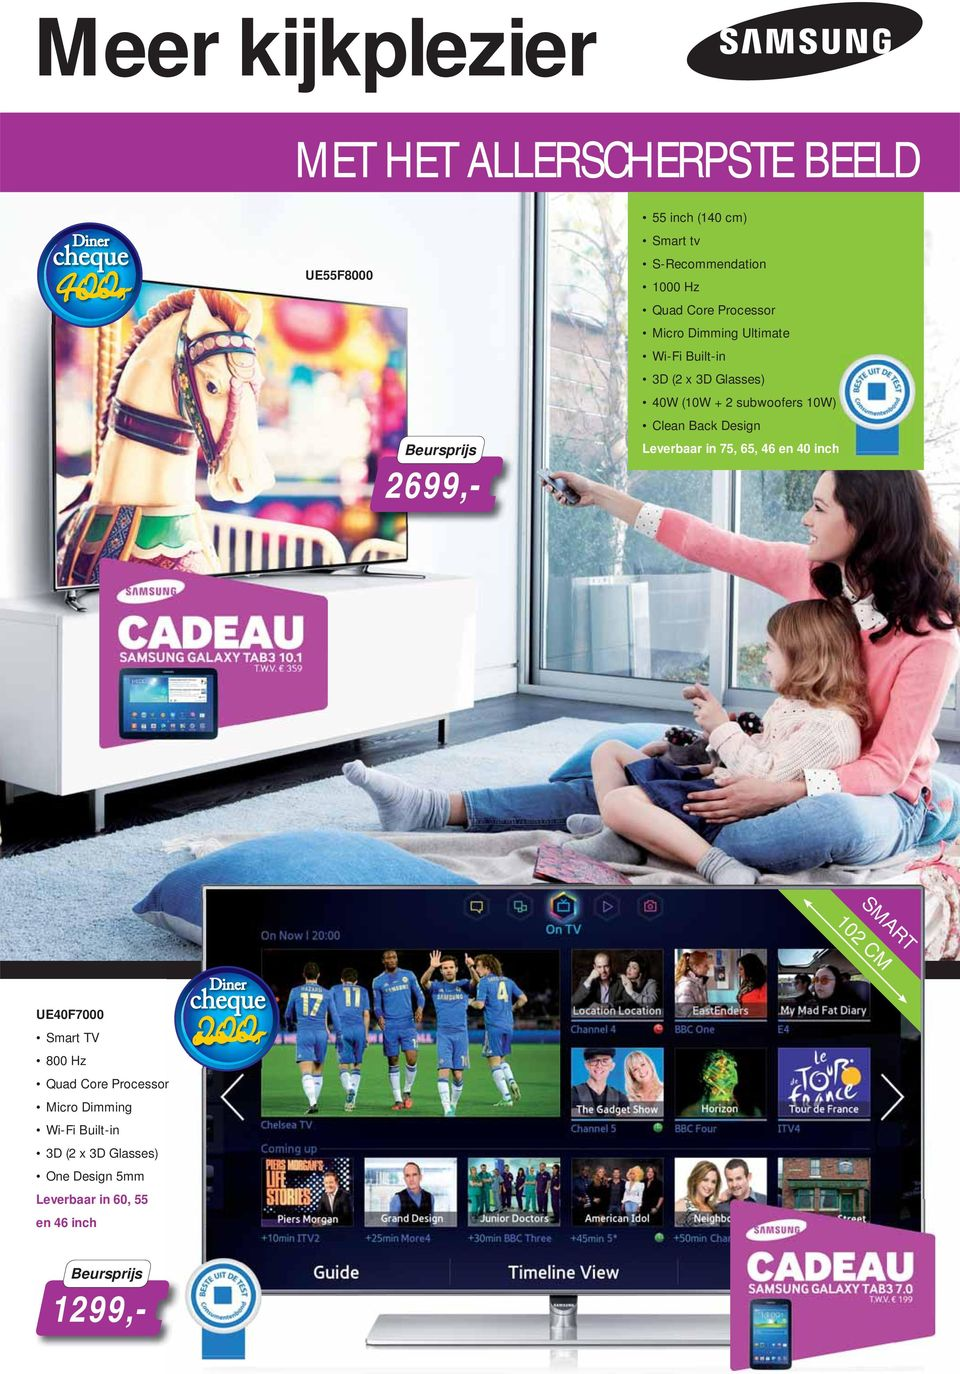 Clean Back Design Leverbaar in 75, 65, 46 en 40 inch SMART 102 CM UE40F7000 Smart TV 800 Hz Quad Core Processor